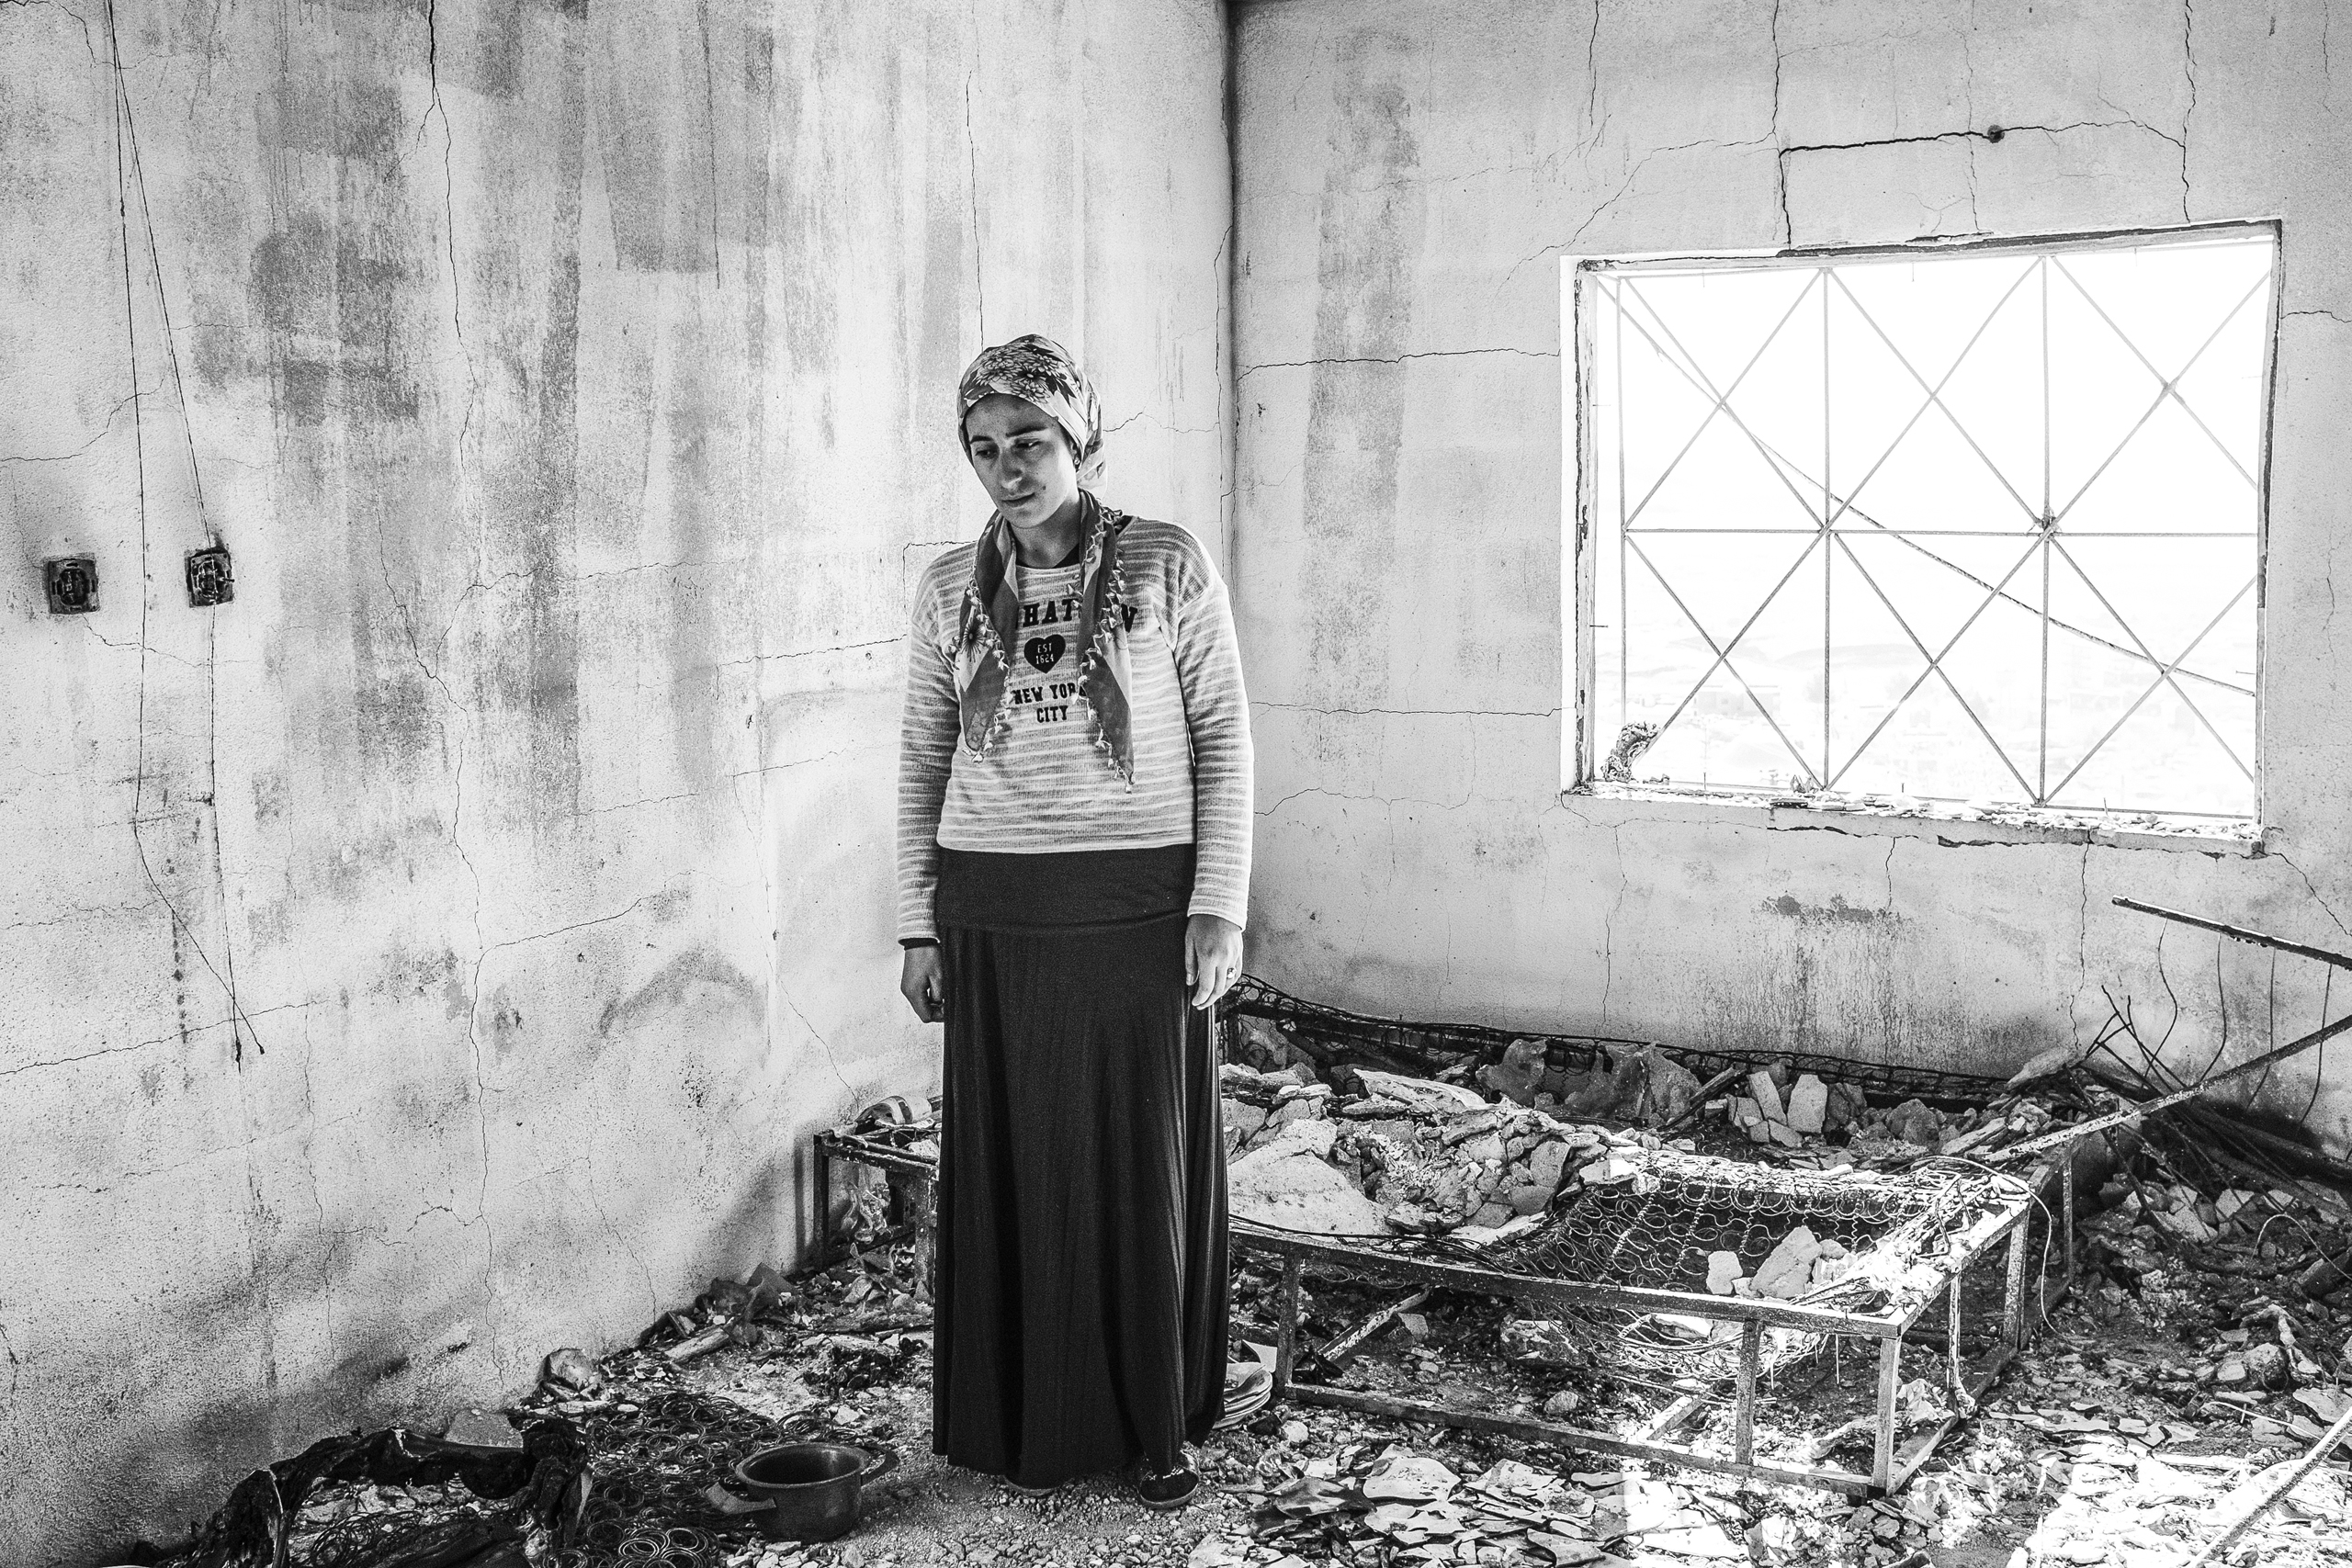 Zahide Onen stands in the wreckage of her home that was hit by a  Turkish military rocket, while she and her family slept, Derik, Turkey, Dec. 2015.